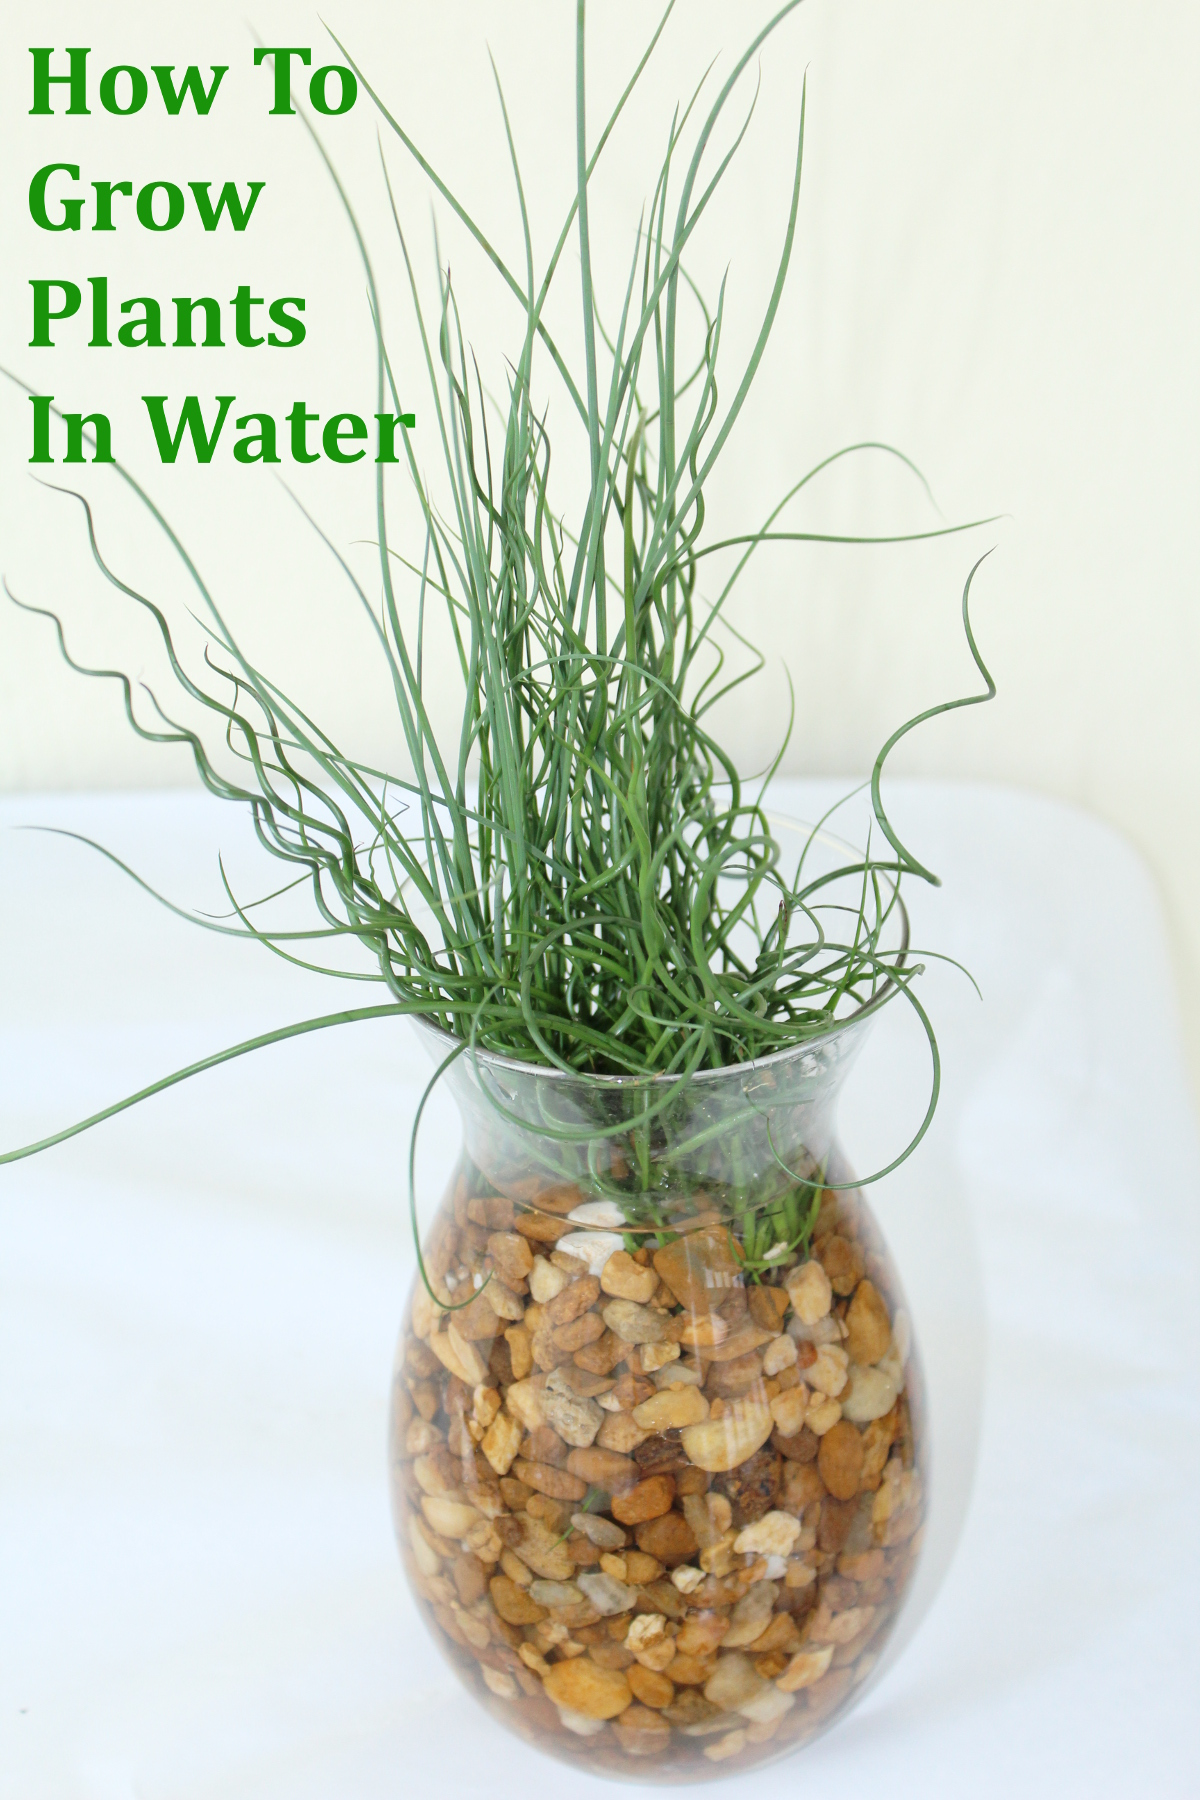 How to grow plants in water indoors princesstafadzwa for What plants can i grow indoors